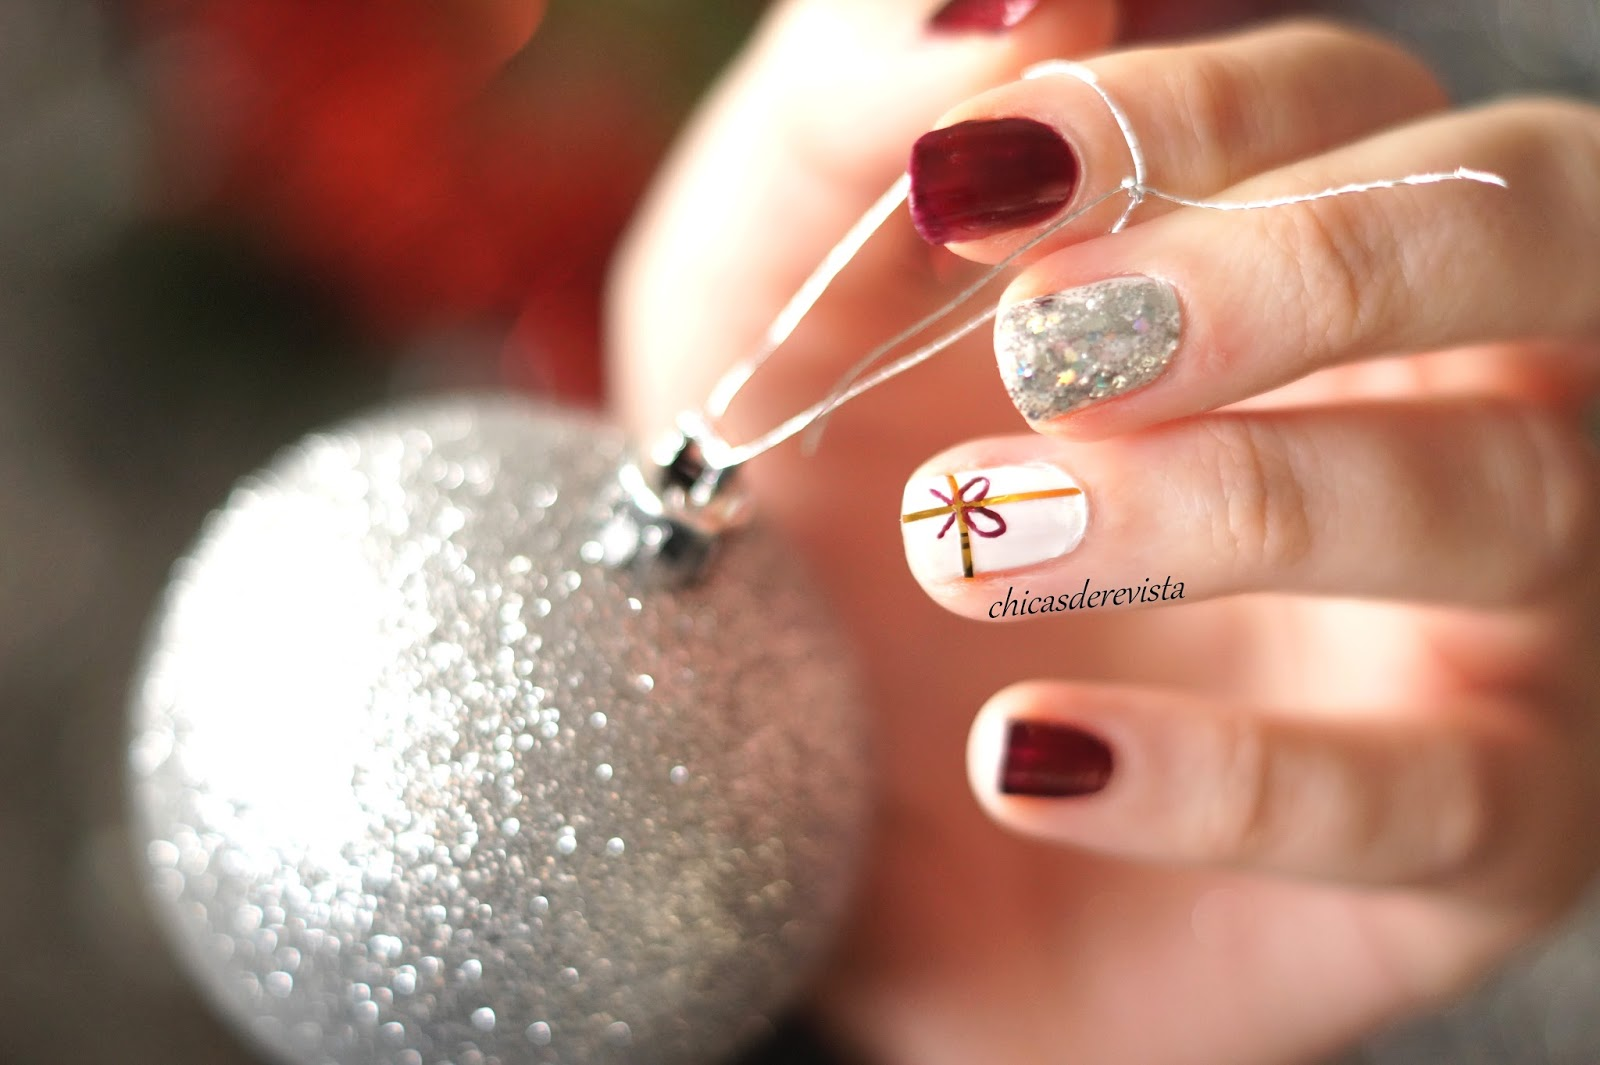 Tuto nail art facile et rapide 4 christmas is coming chicas de revista blog mode bordeaux - Nail art noel facile ...